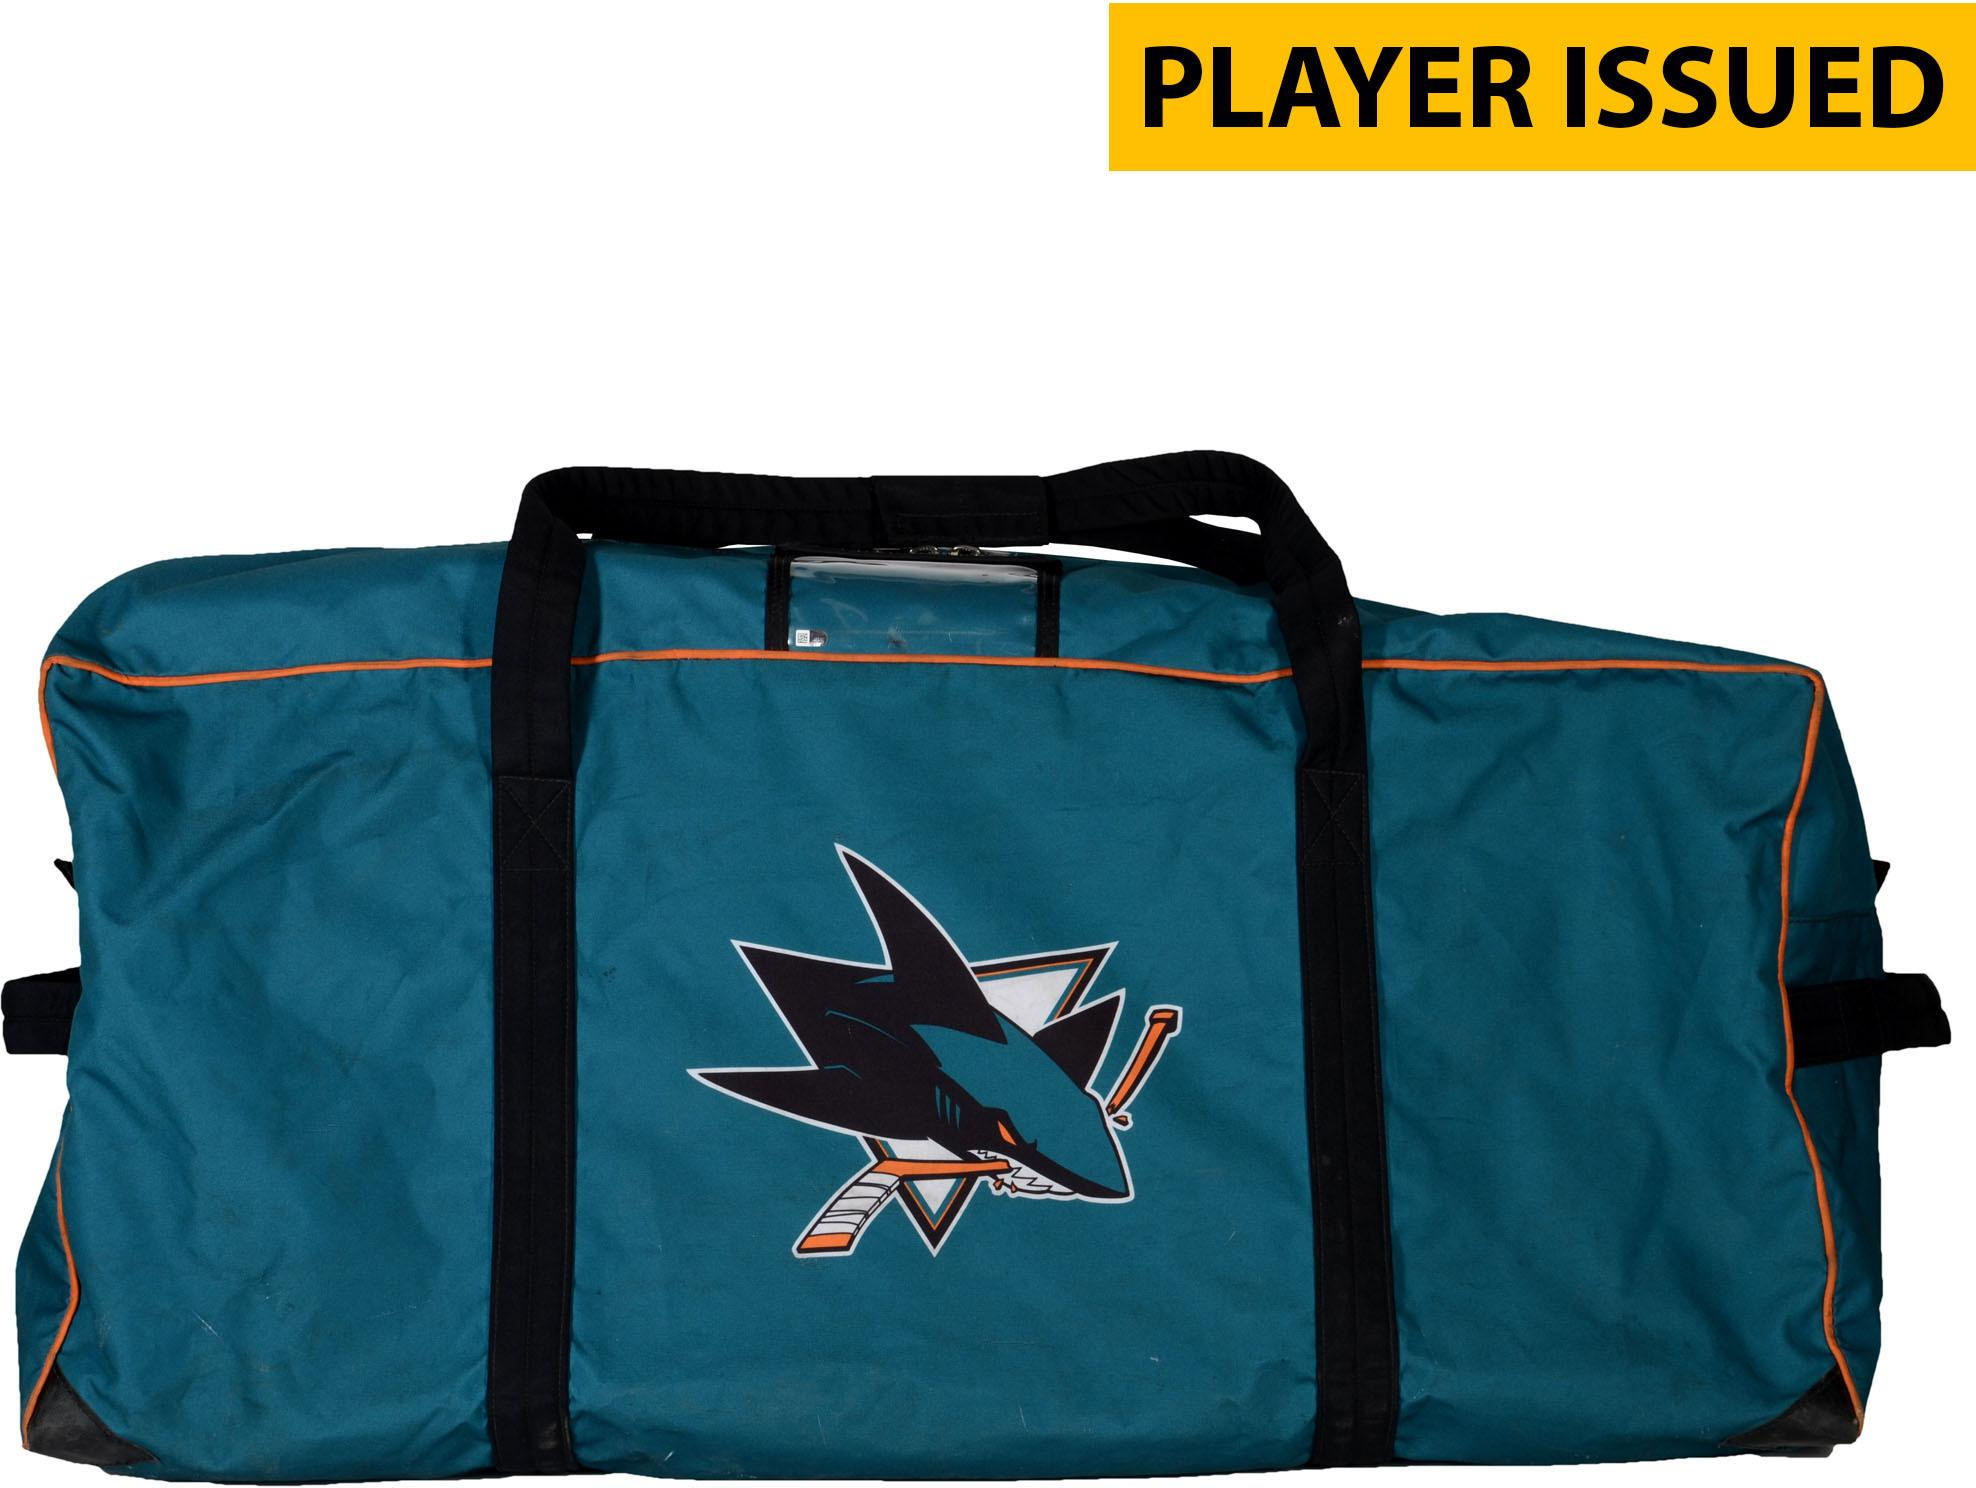 Paul Martin San Jose Sharks Player-Issued #7 Teal Equipment Bag from the 2017-18 NHL Season Fanatics Authentic Certified by Fanatics Authentic